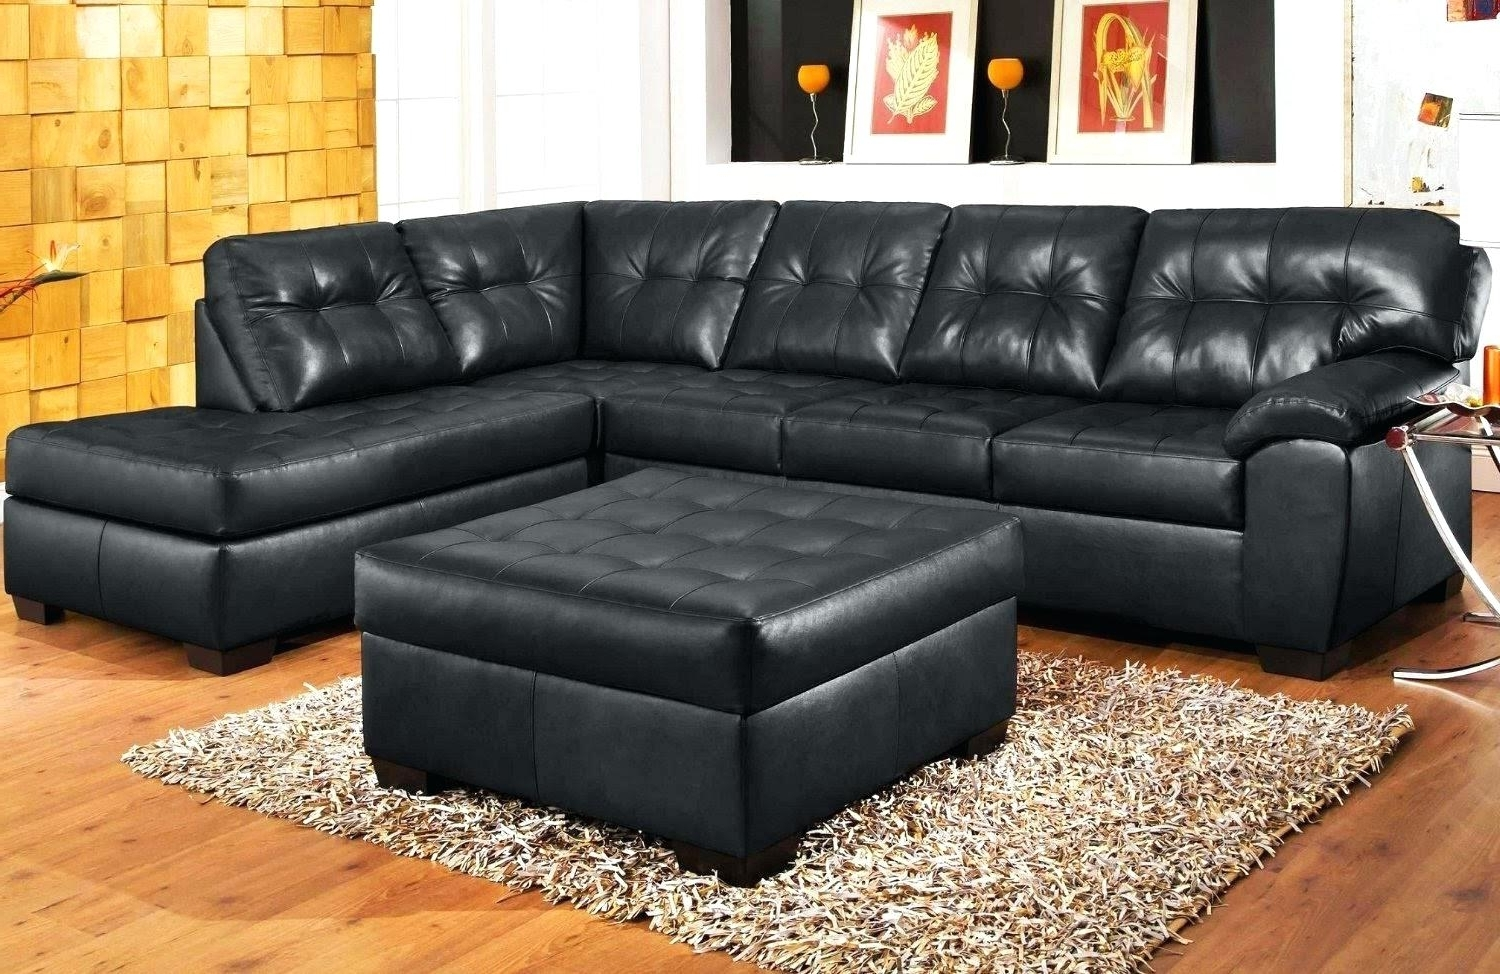 Popular Black Sectional Couch Sofa With Chaise For Cheap Leather Recliner Pertaining To Black Sectional Sofas (View 12 of 15)